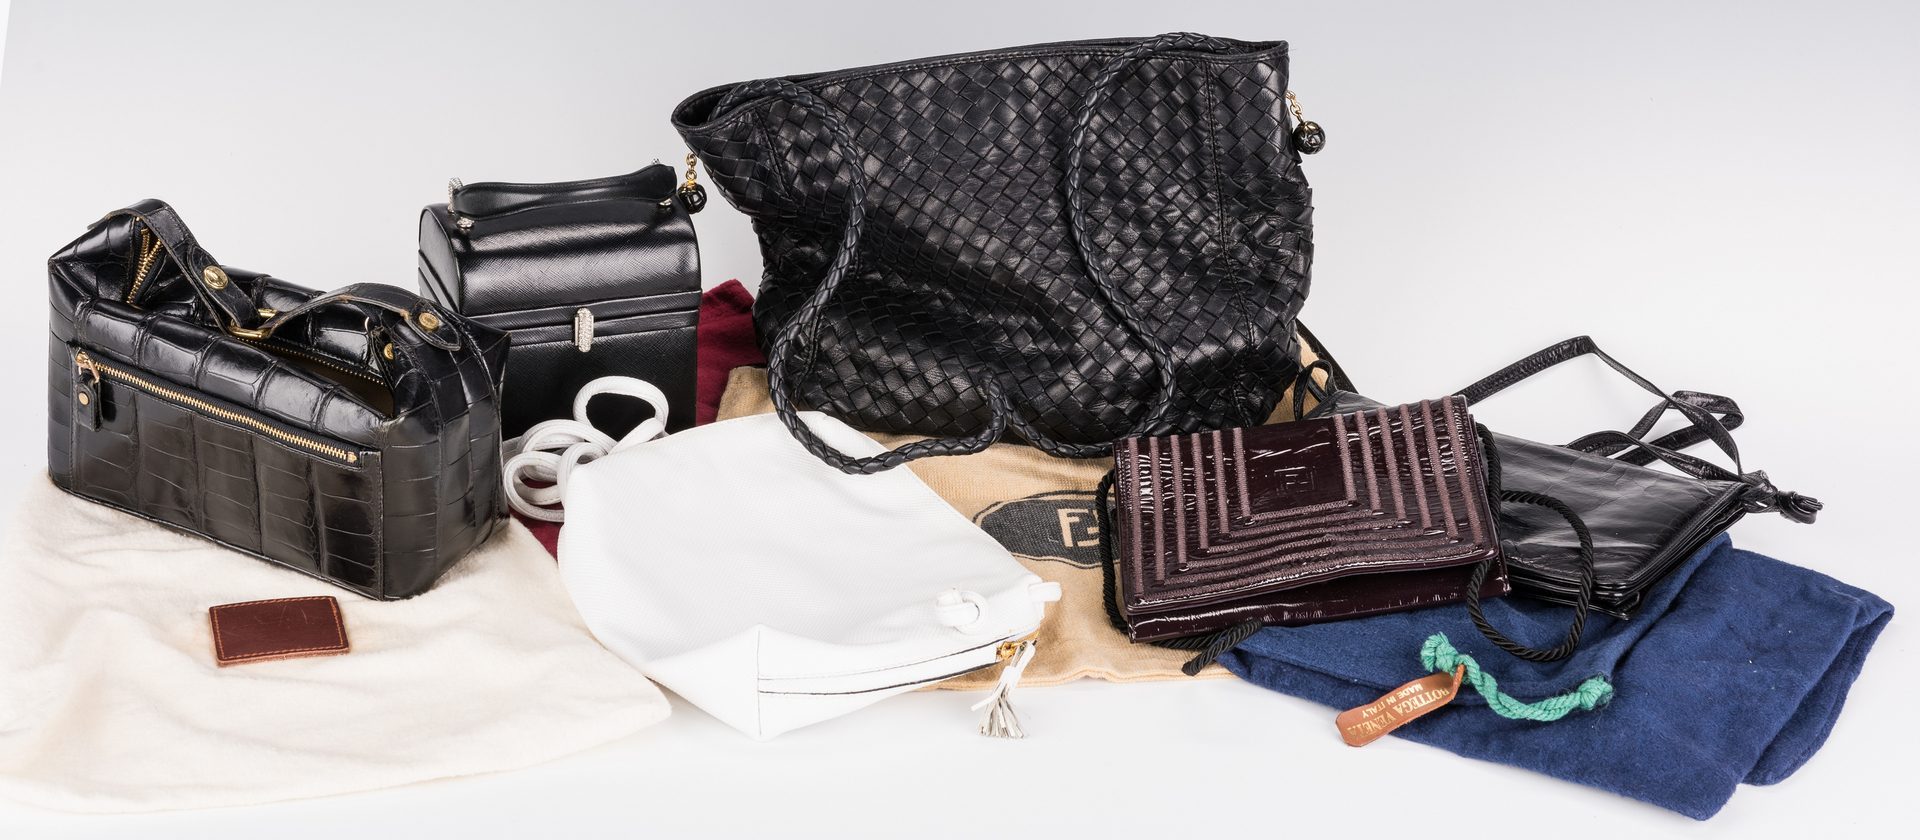 Lot 190: 6 Designer Purses, inc. Bottega Veneta, Fendi